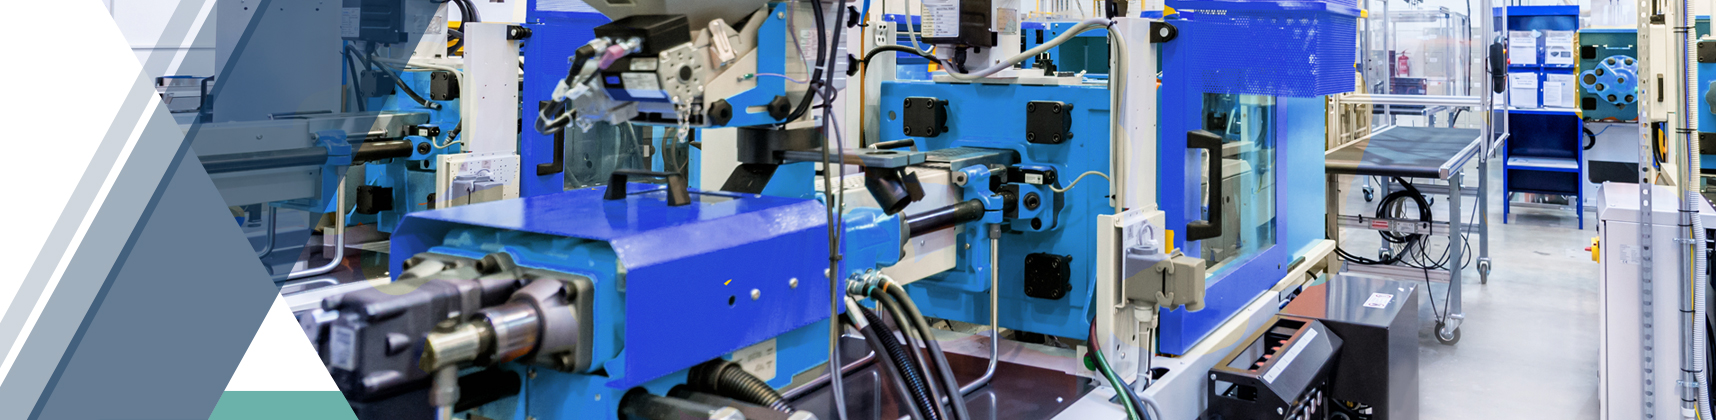 Injection molding services - upgrade or replace your injection molding machine